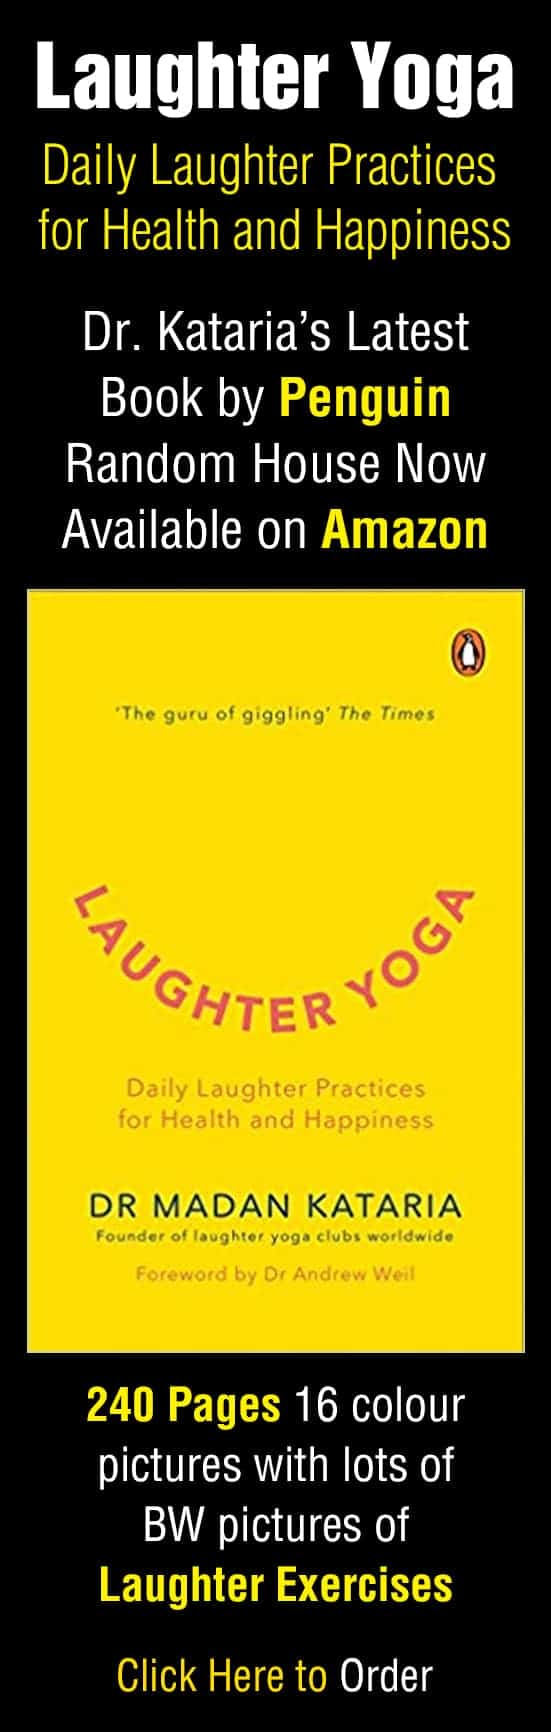 Laughter Yoga Penguin Book